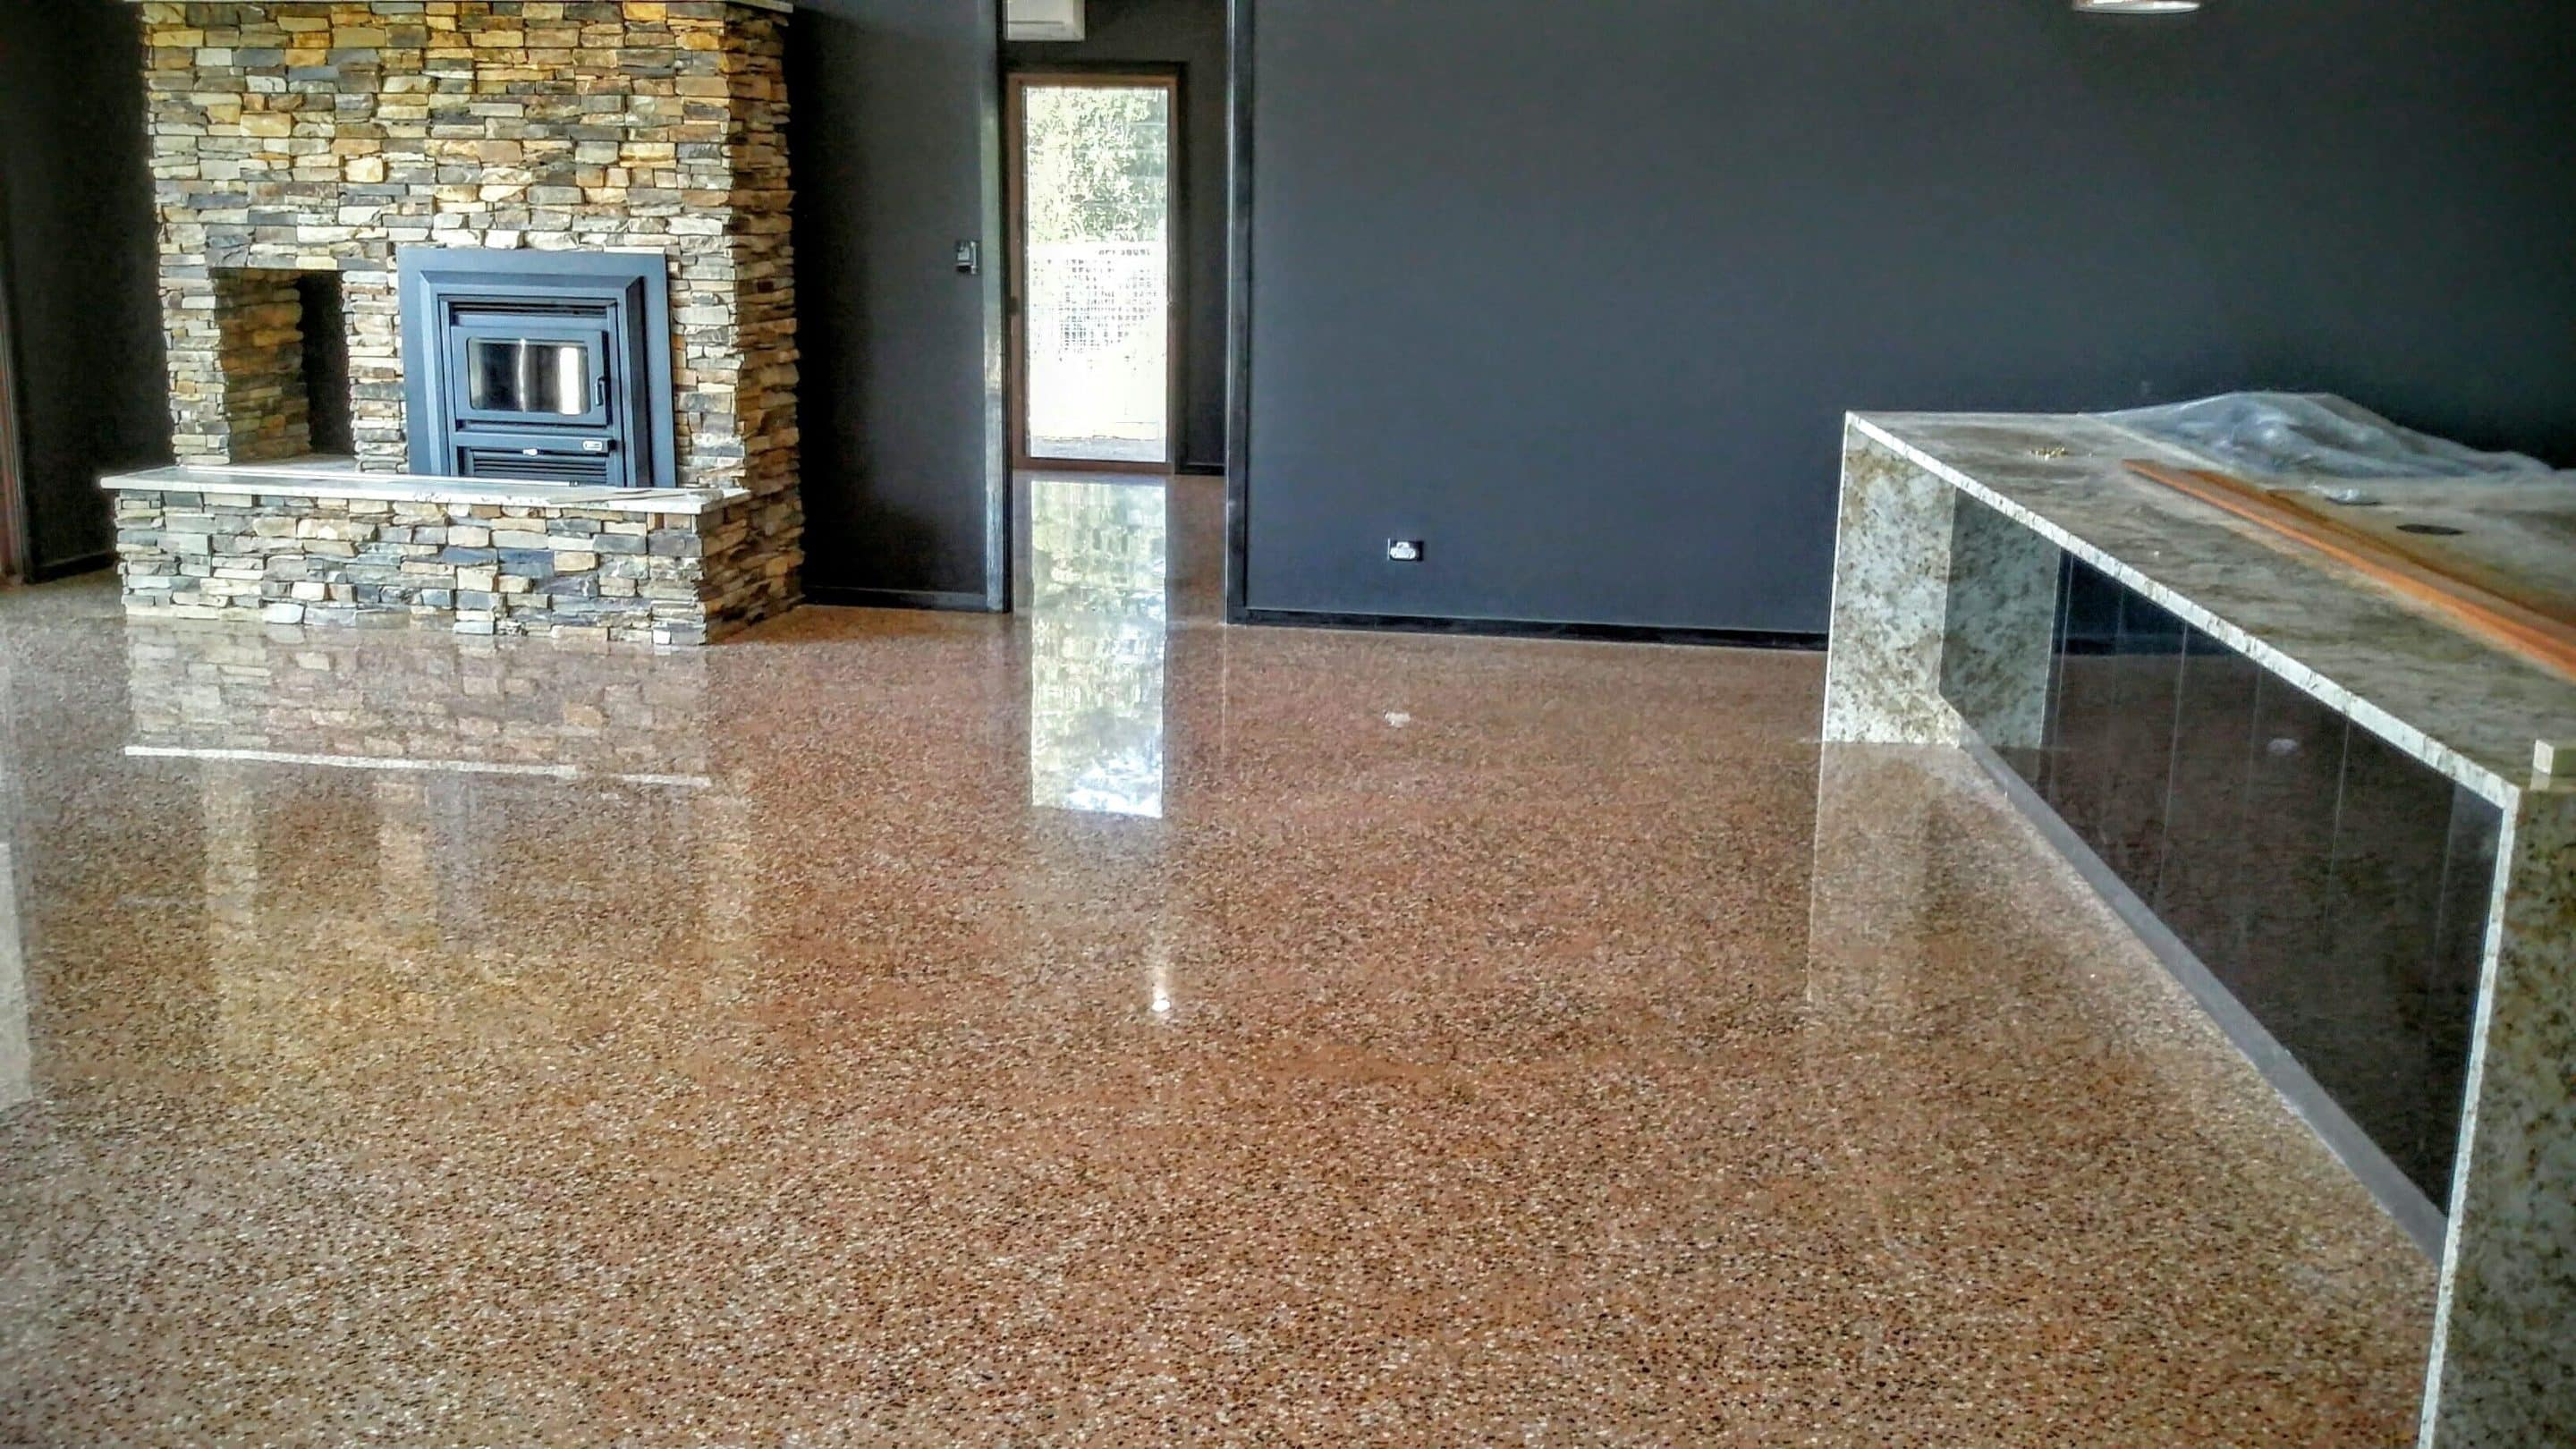 signature polishing residence concrete floor coast ideas polished floors private cost gold